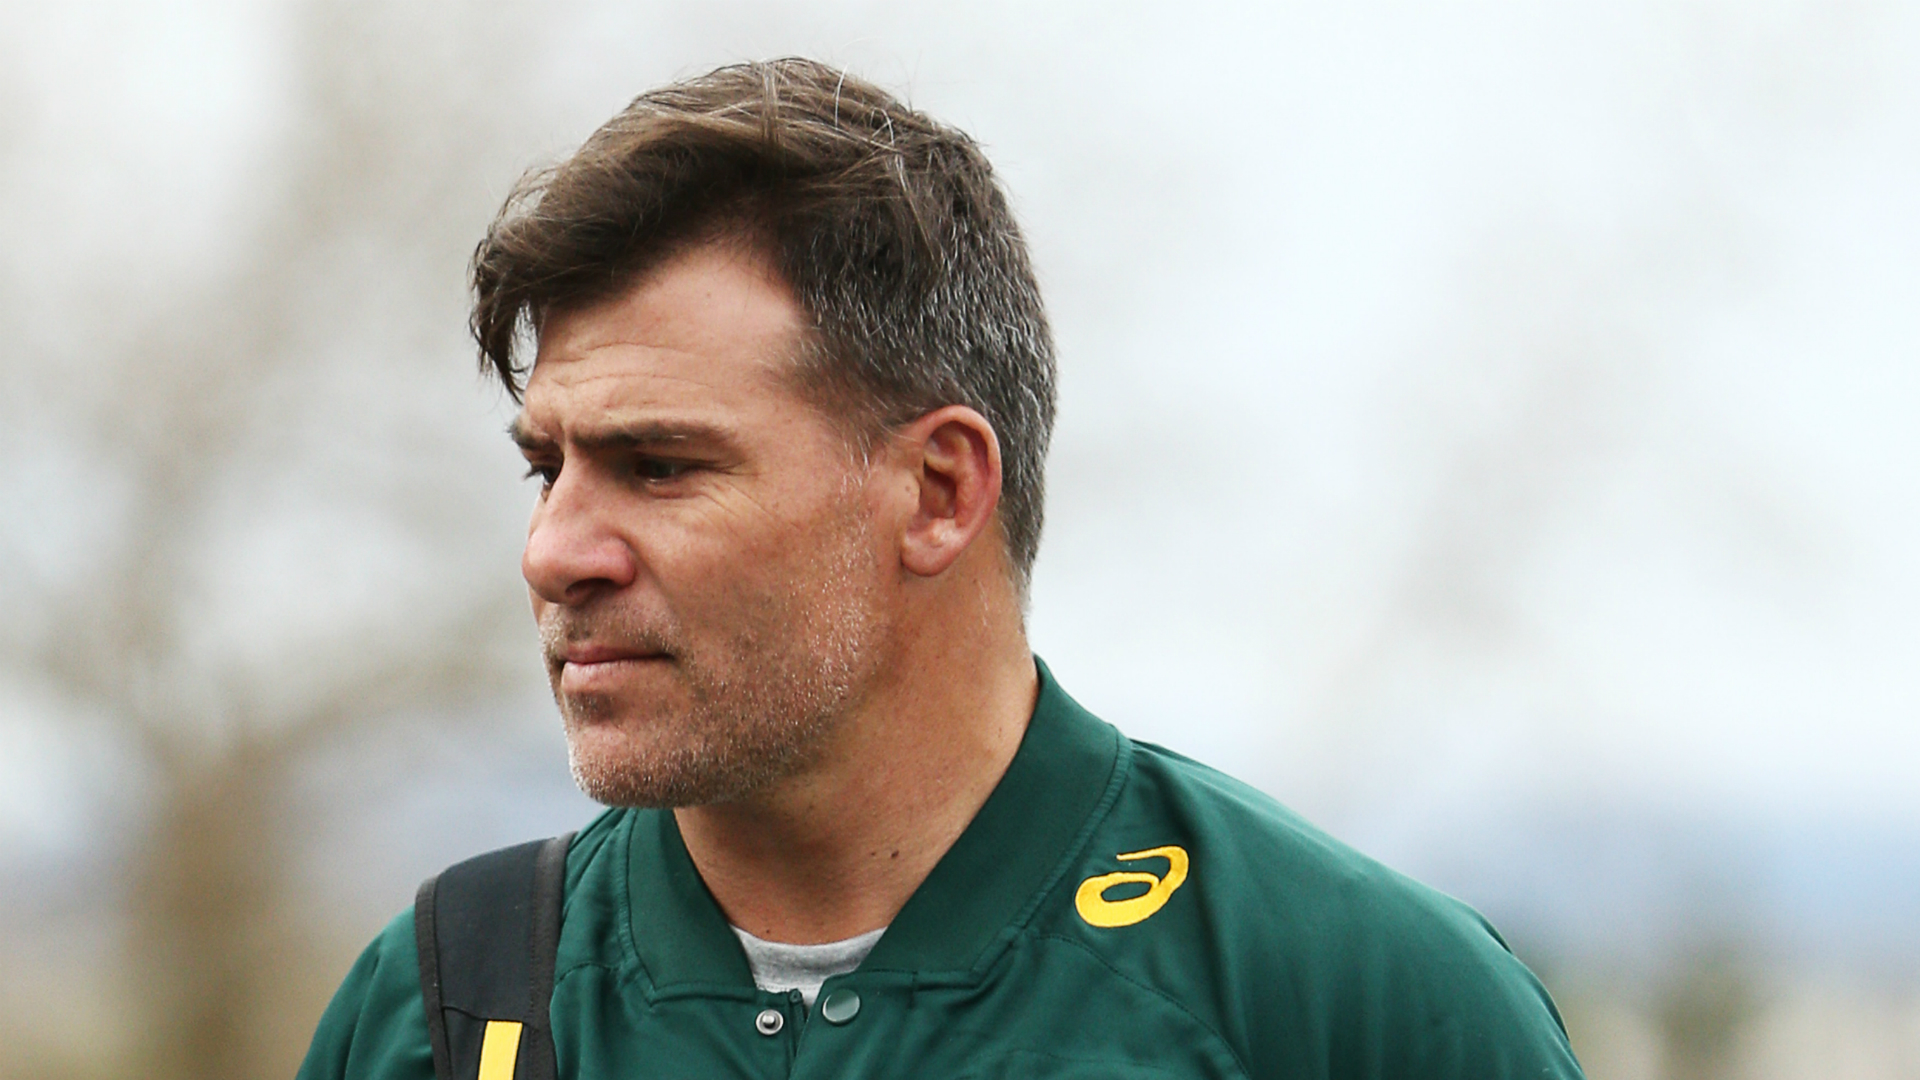 Rassie Erasmus has named Schalk Brits as captain for the Springboks in the last match before he selects his Rugby World Cup squad.